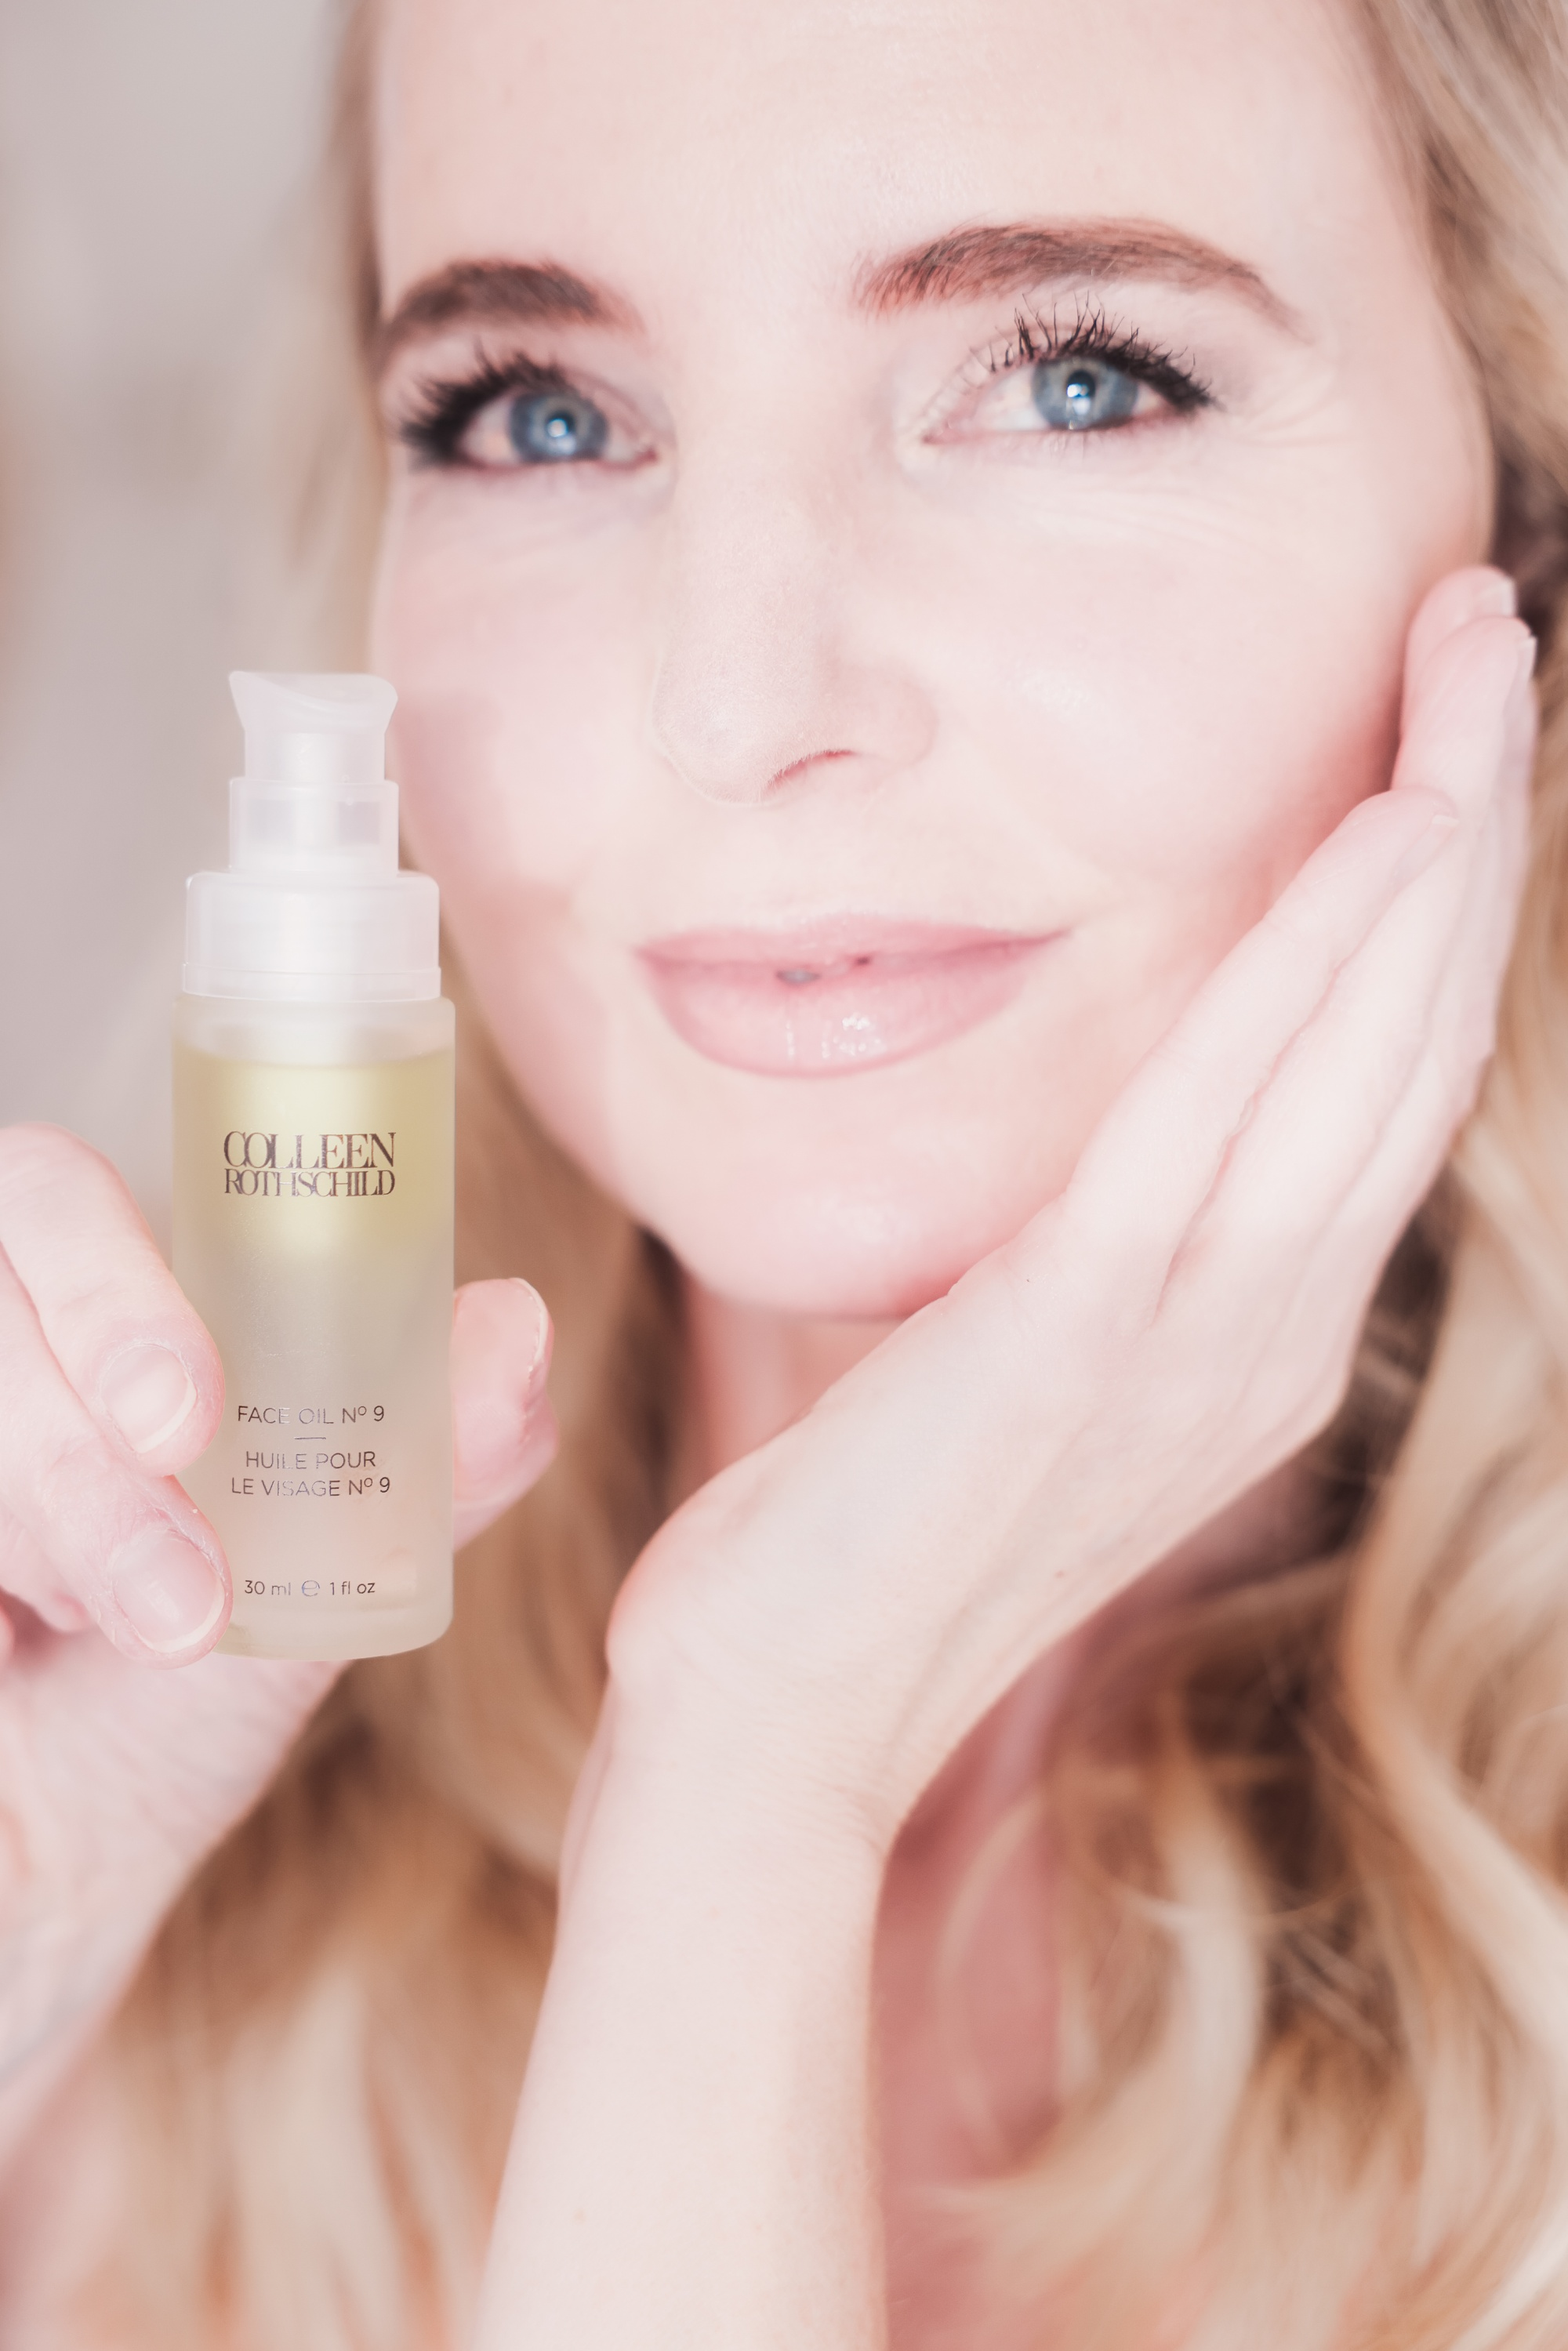 Best Skincare Over 40, Erin Busbee of Busbee using the Colleen Rothschild Face Oil No. 9 in her bathroom in Telluride, Colorado